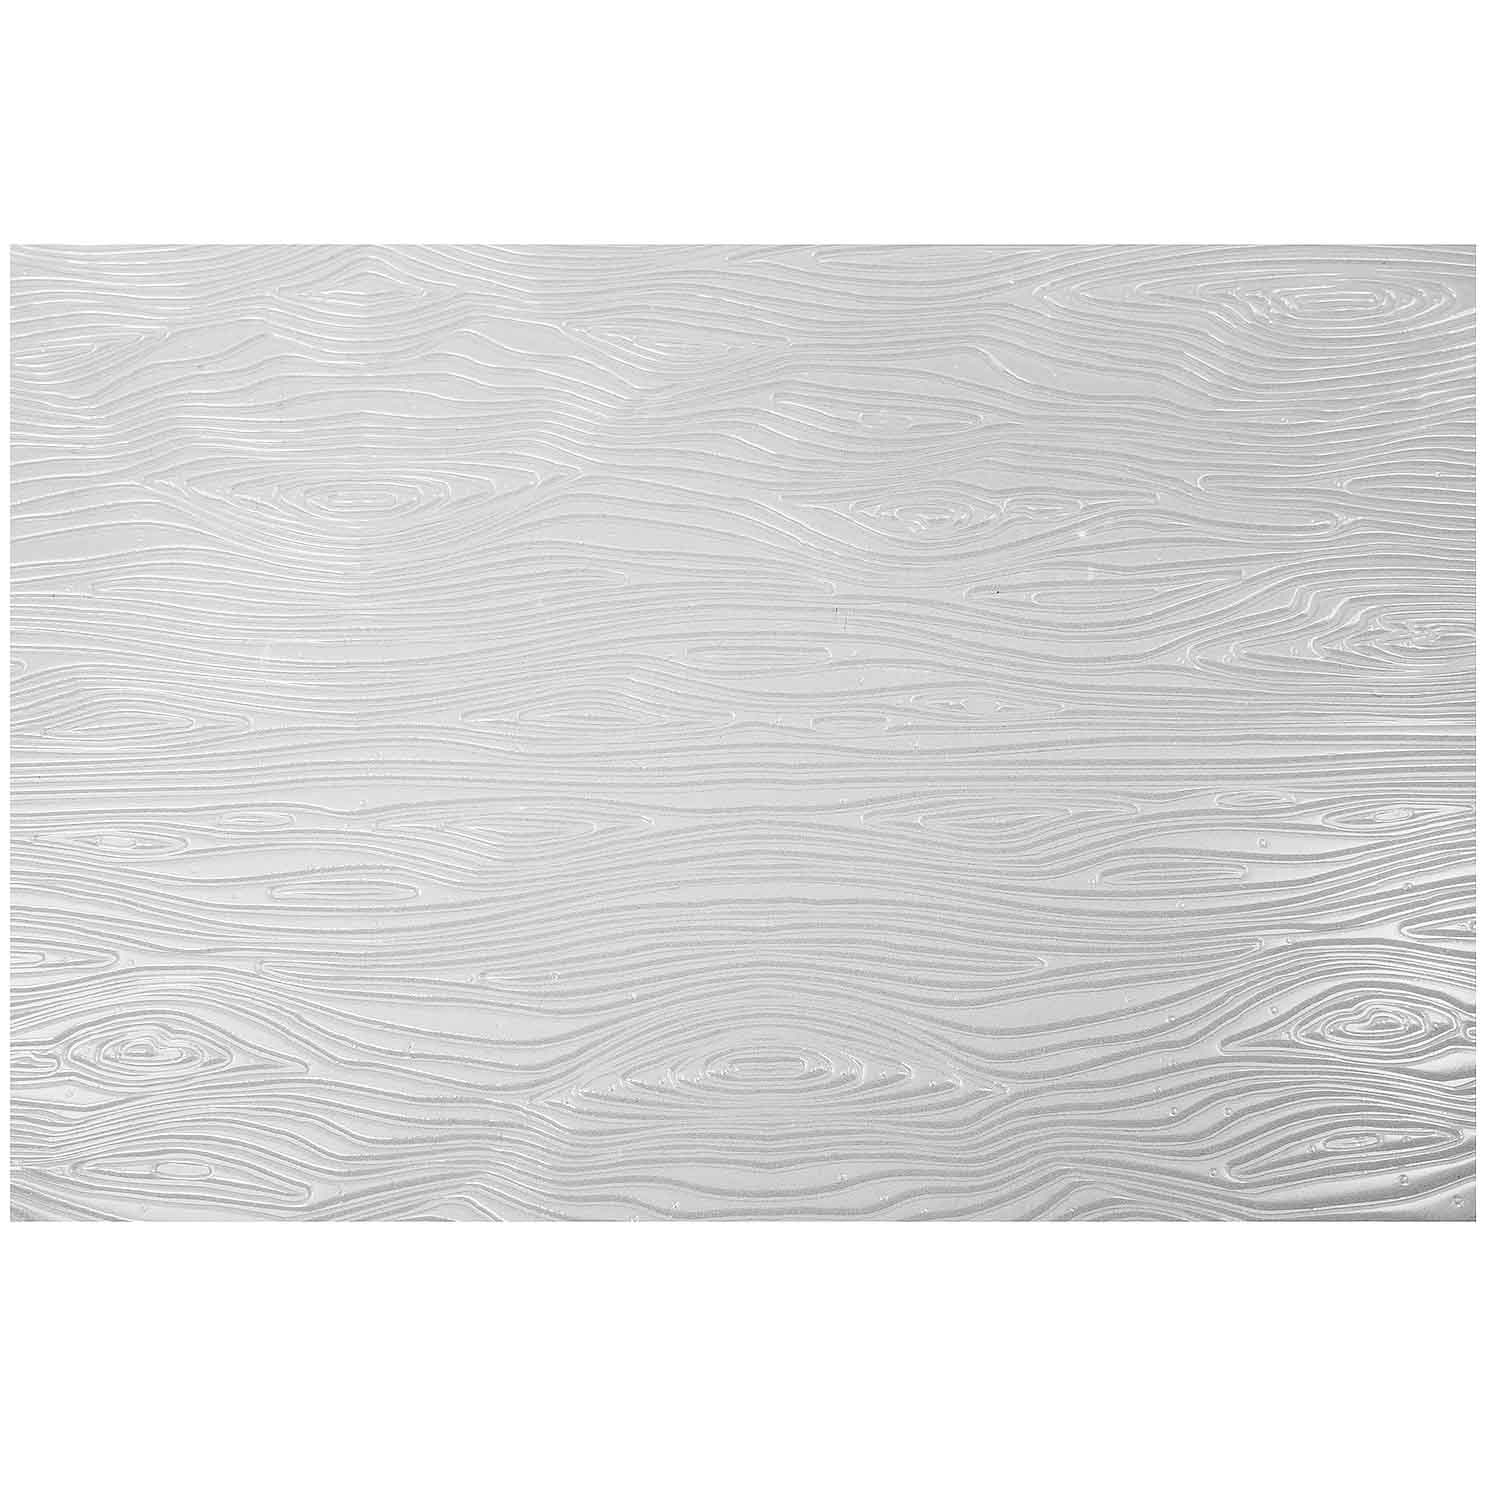 Wood Grain Impression Mat